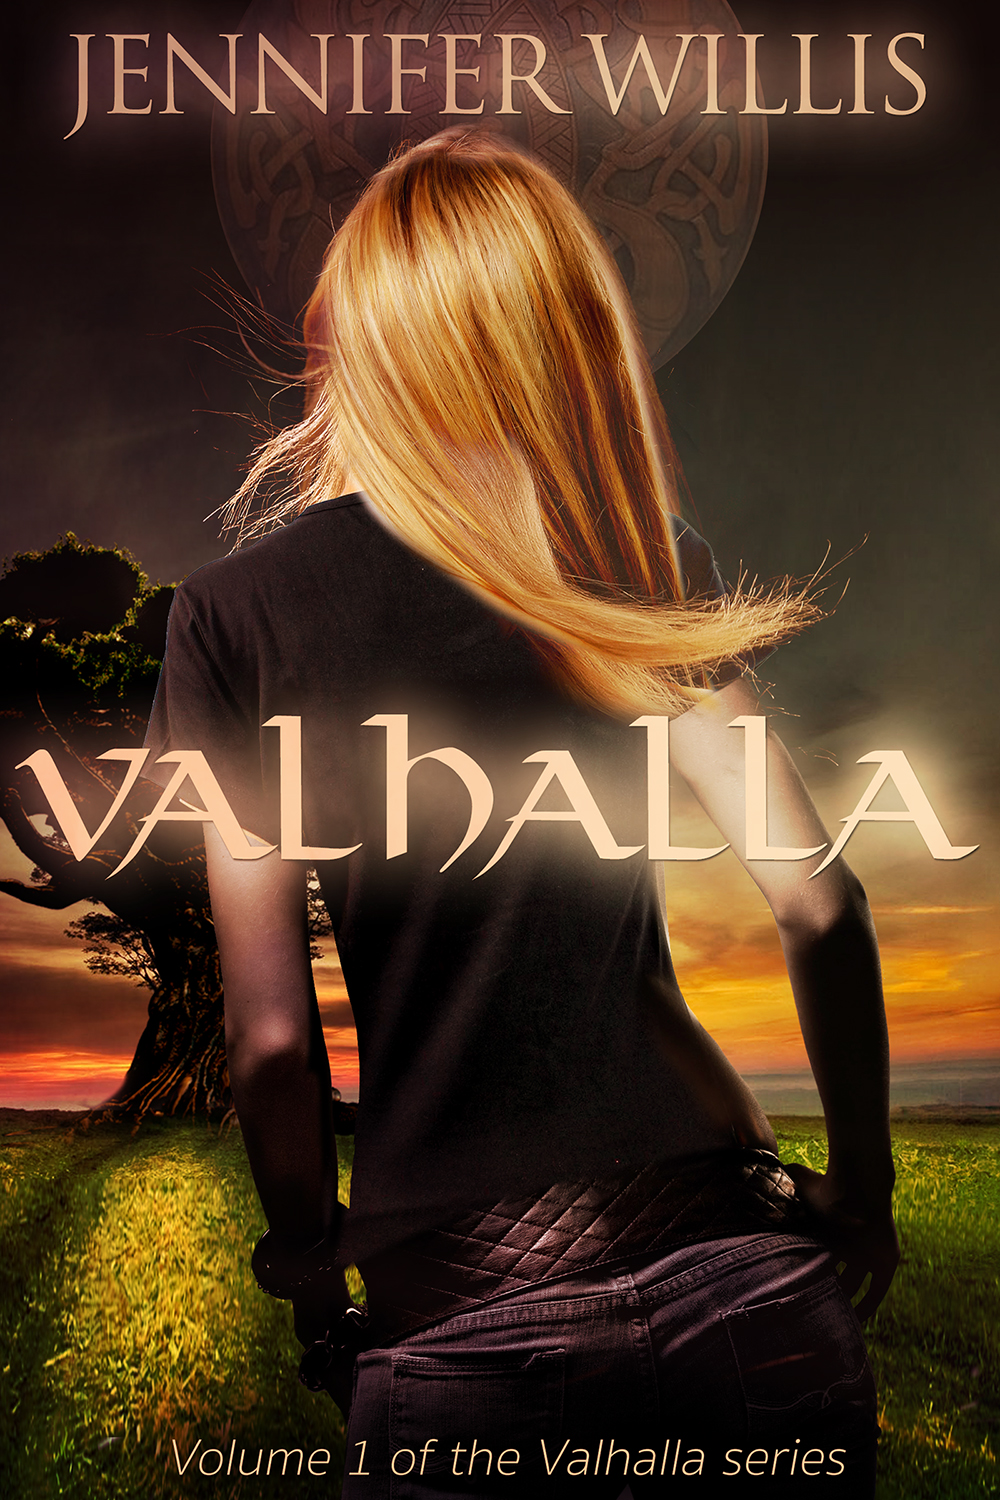 Valhalla by Jennifer Willis